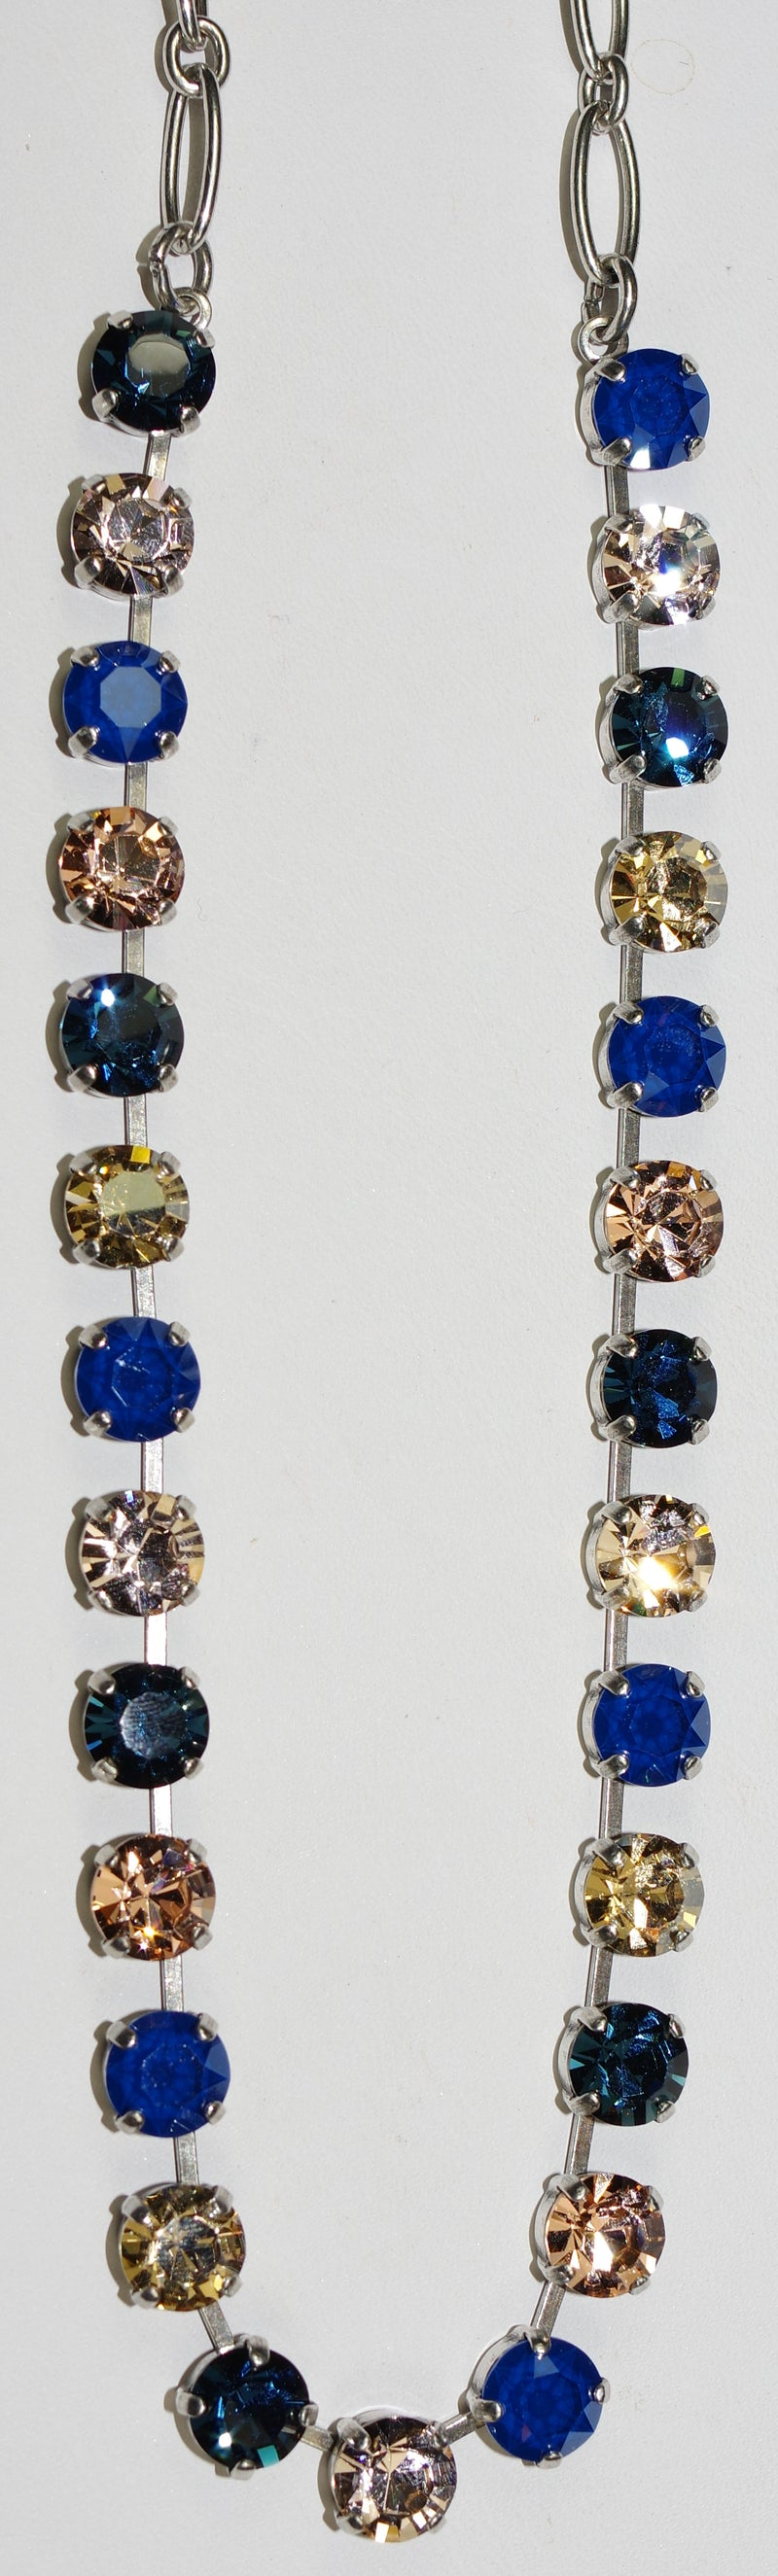 "MARIANA NECKLACE BETTE OCEAN: amber, blue, 1/4"" stones in silver setting, 17"" adjustable chain"